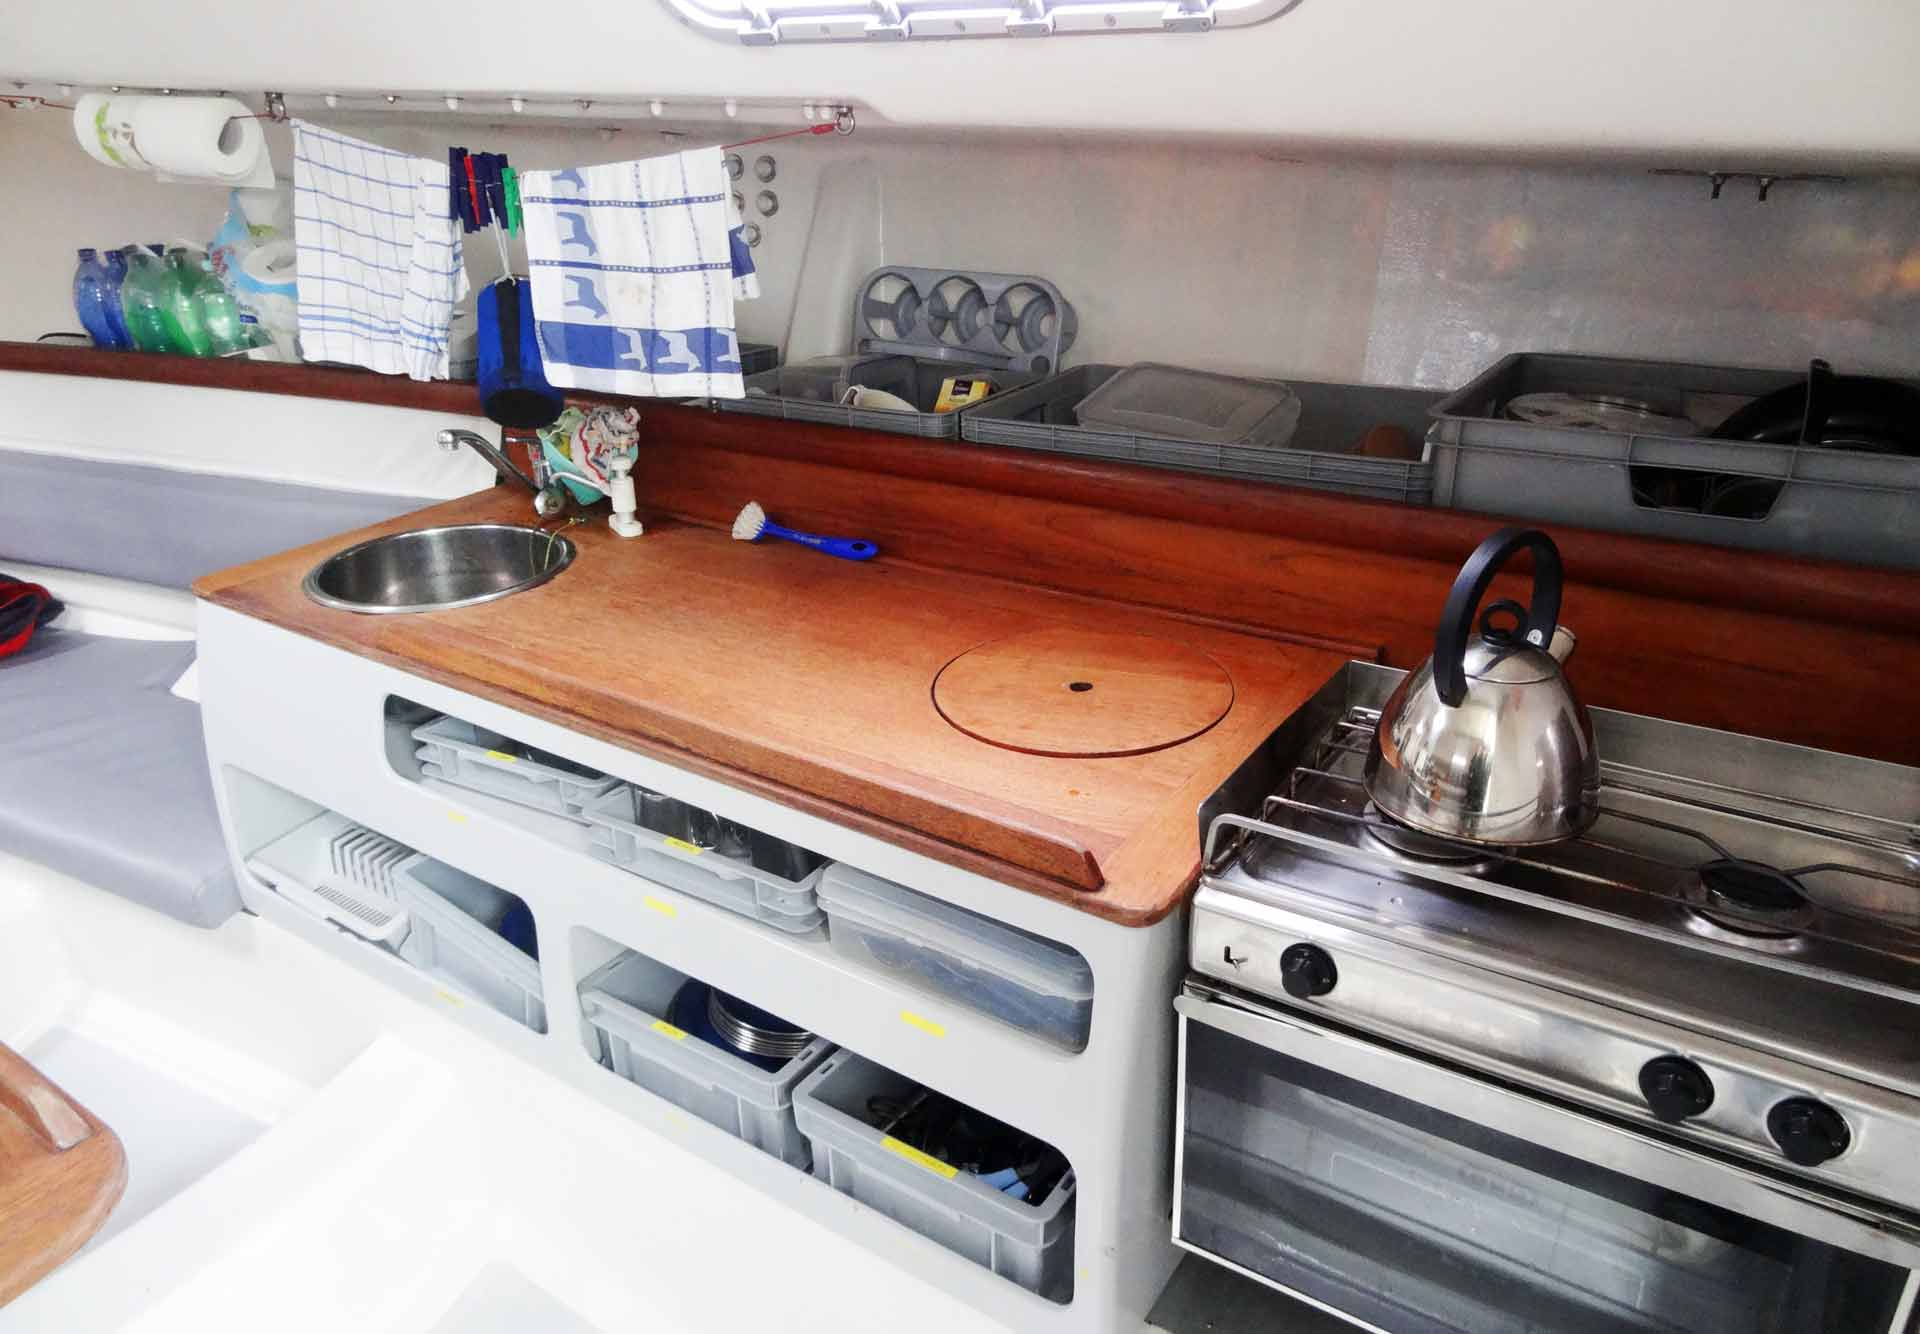 The Galley of our Pogo 40 Sailing Yacht